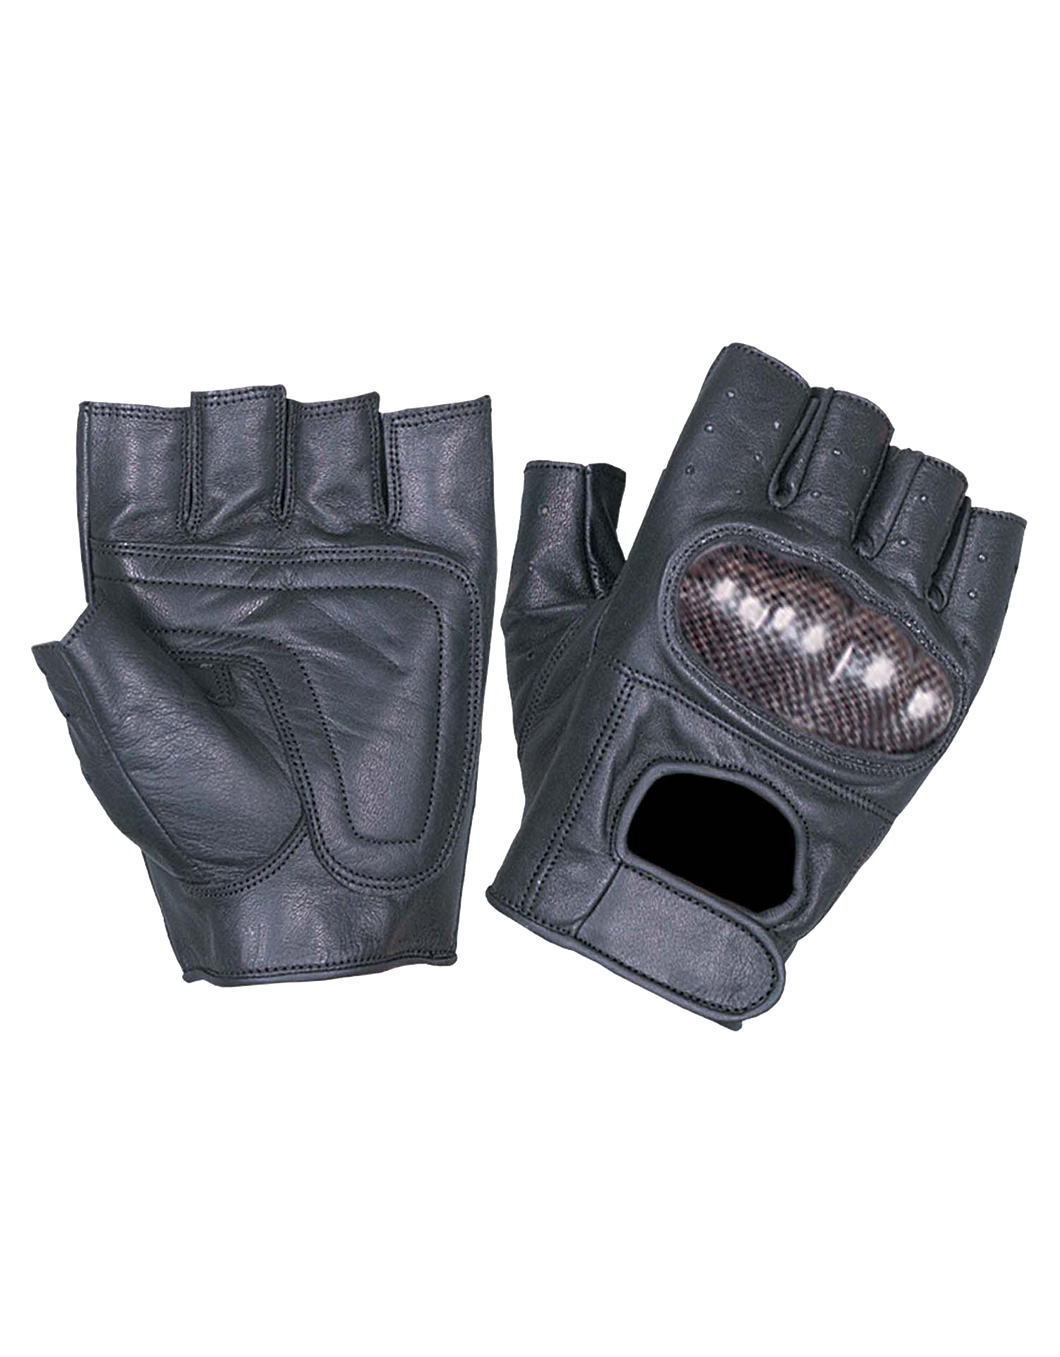 UNIK Fingerless Gloves with Knuckle Armor - Leather Lollipop